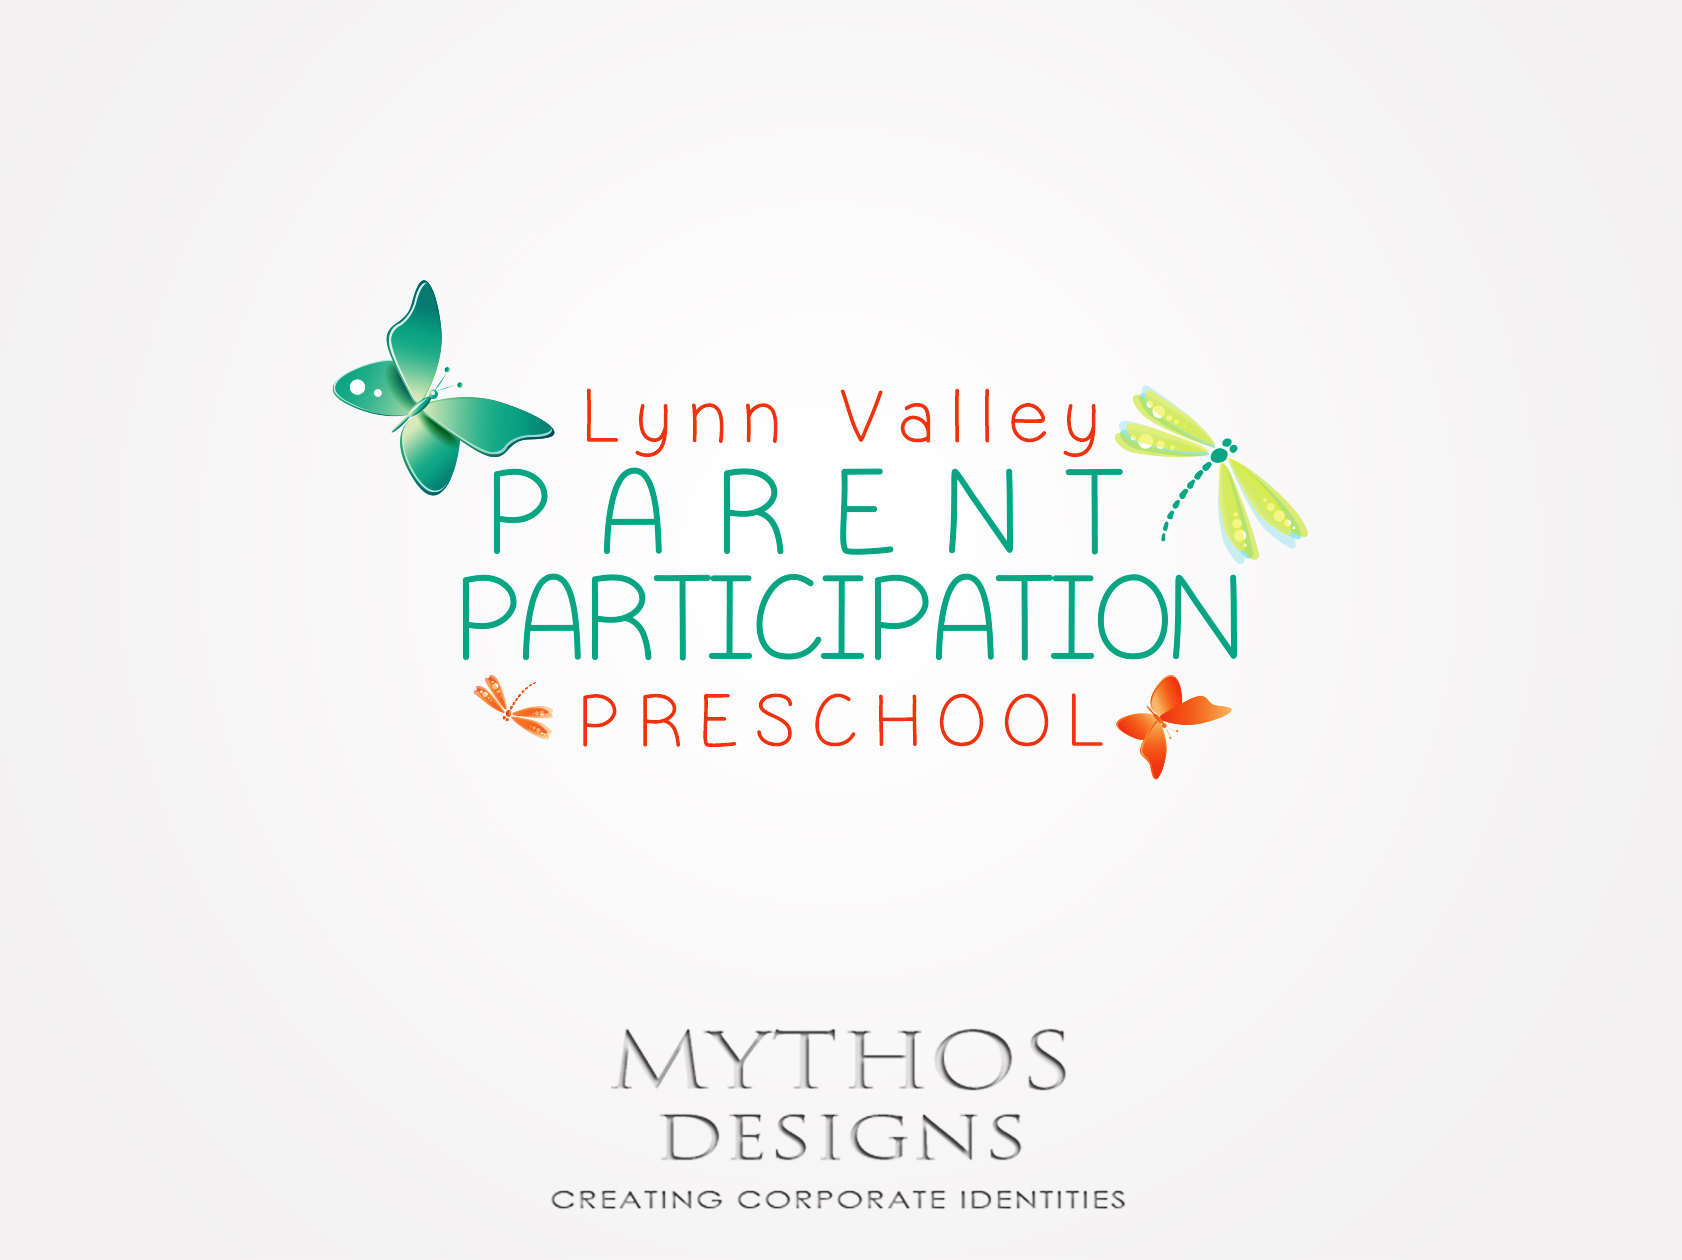 Logo Design by Mythos Designs - Entry No. 39 in the Logo Design Contest New Logo Design for Lynn Valley Parent Participation Preschool.